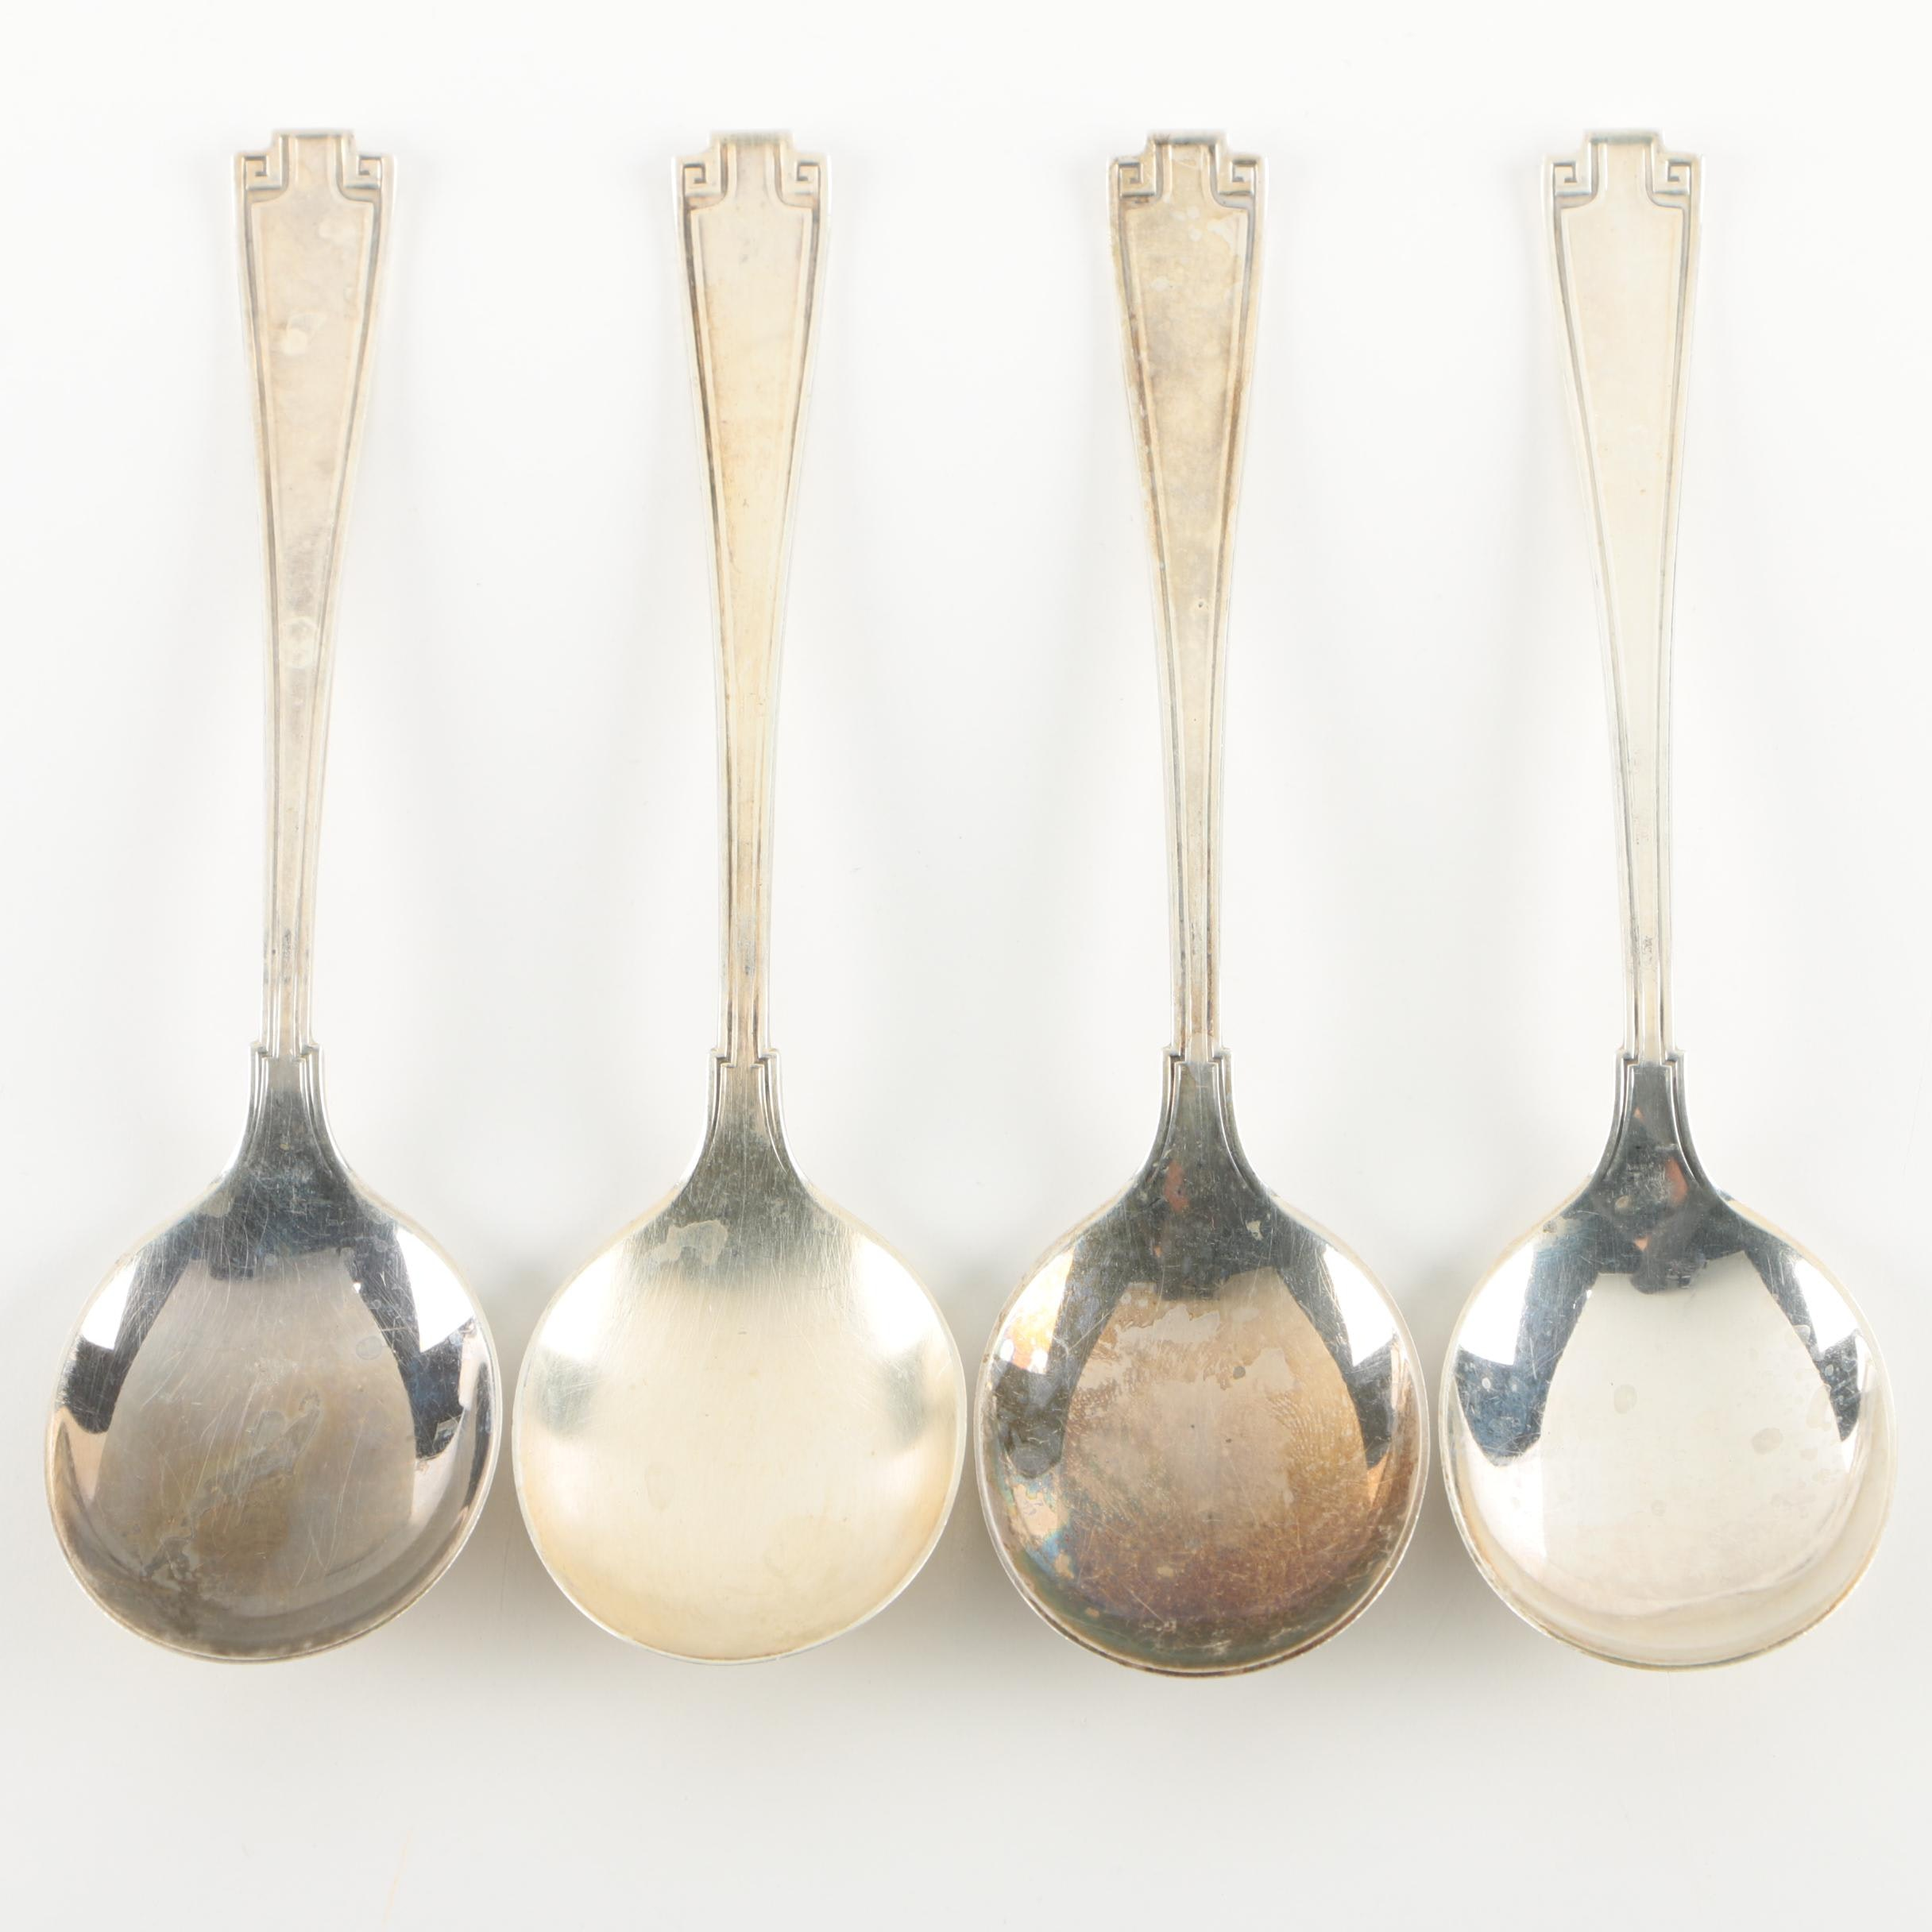 """Gorham """"Etruscan"""" Sterling Silver Cream Soup Spoons, Early 20th Century"""